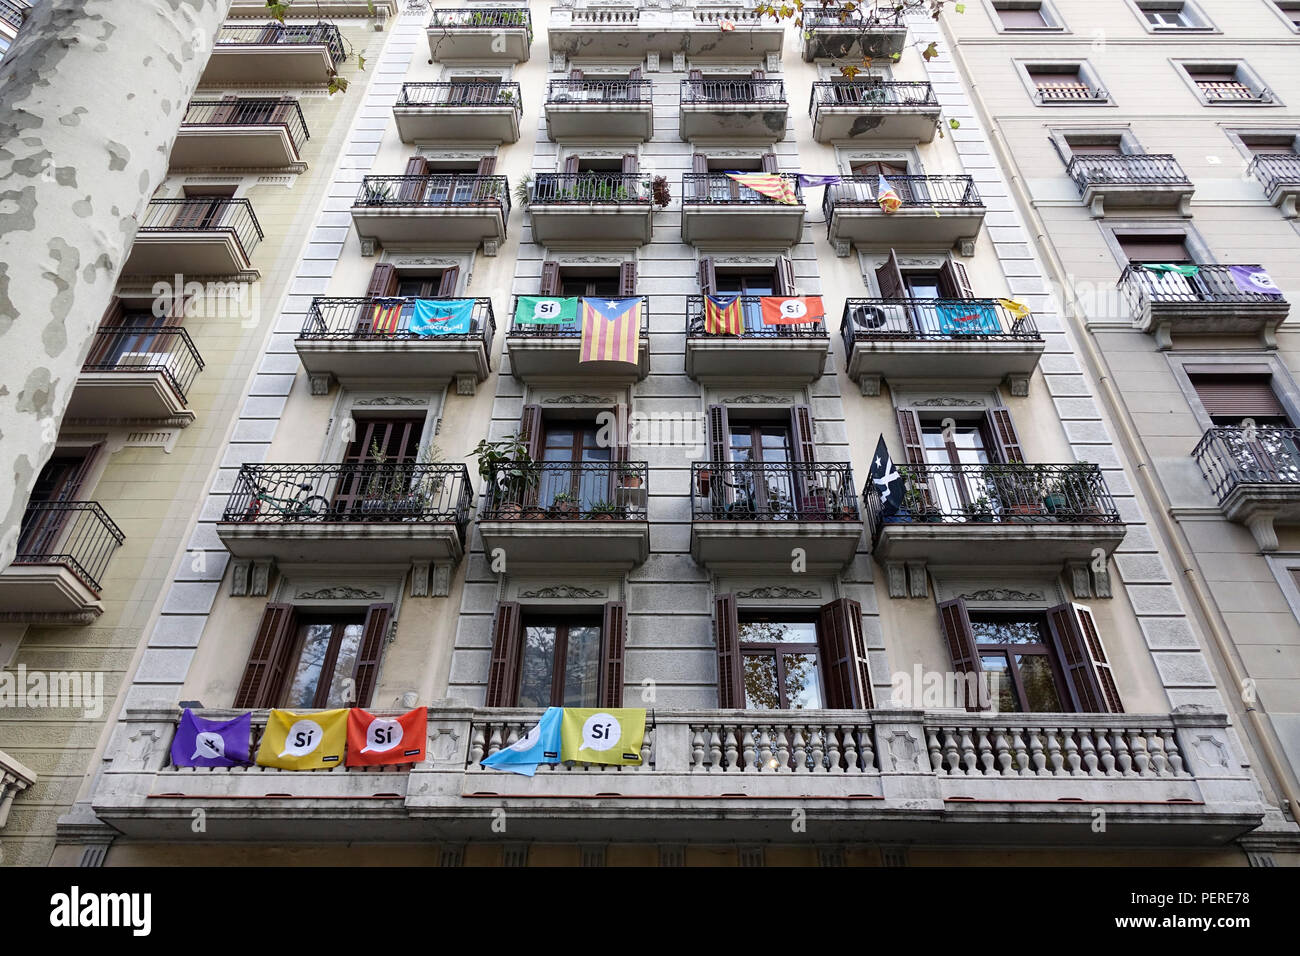 Catalonia National Flags And Si Yes Flags In Support Of An Independent Catalan Fly From Apartment Balconies In Barcelona Spain November 2017 Stock Photo